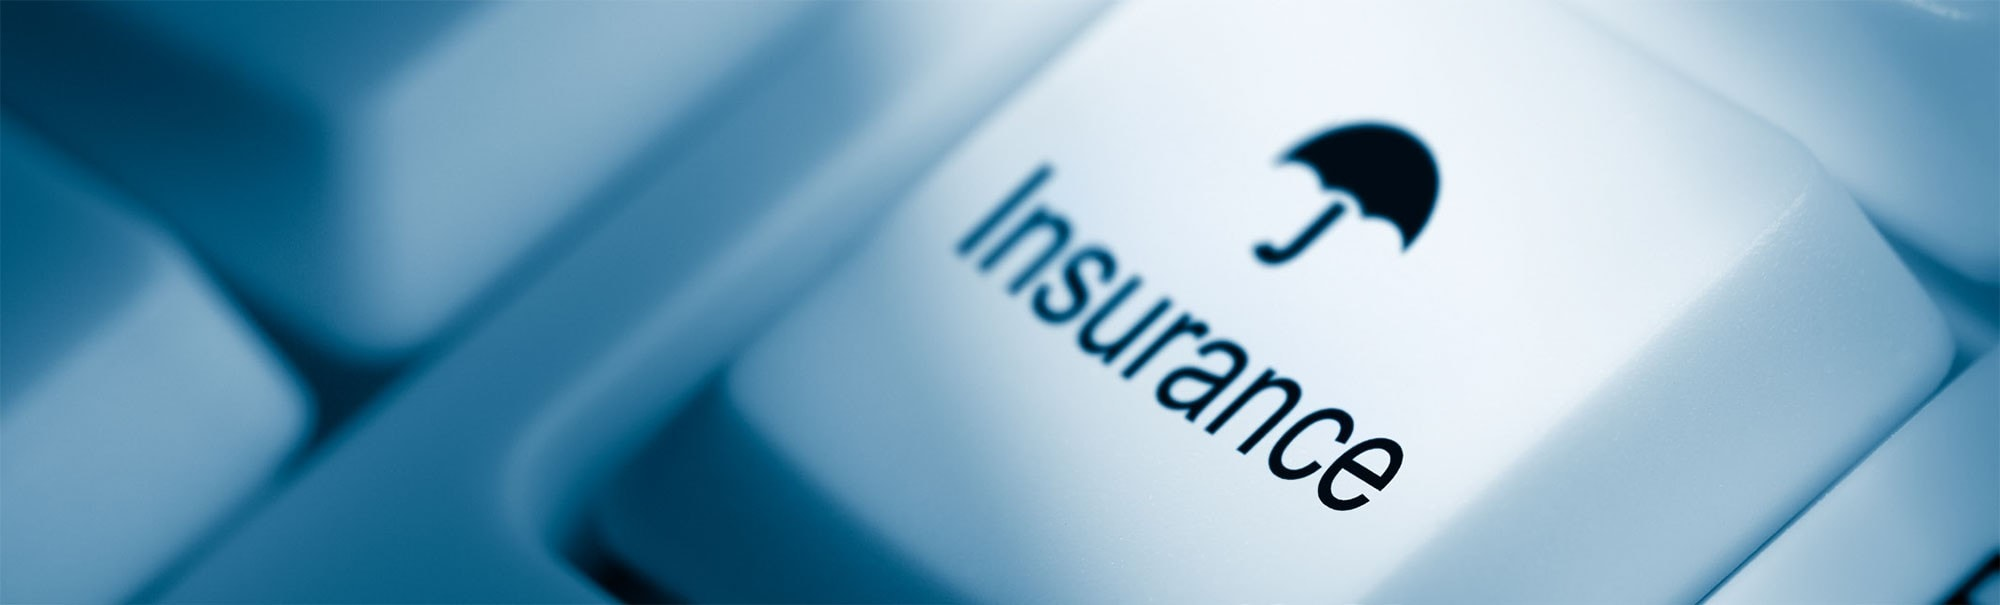 Belfius Insurance Umbrella